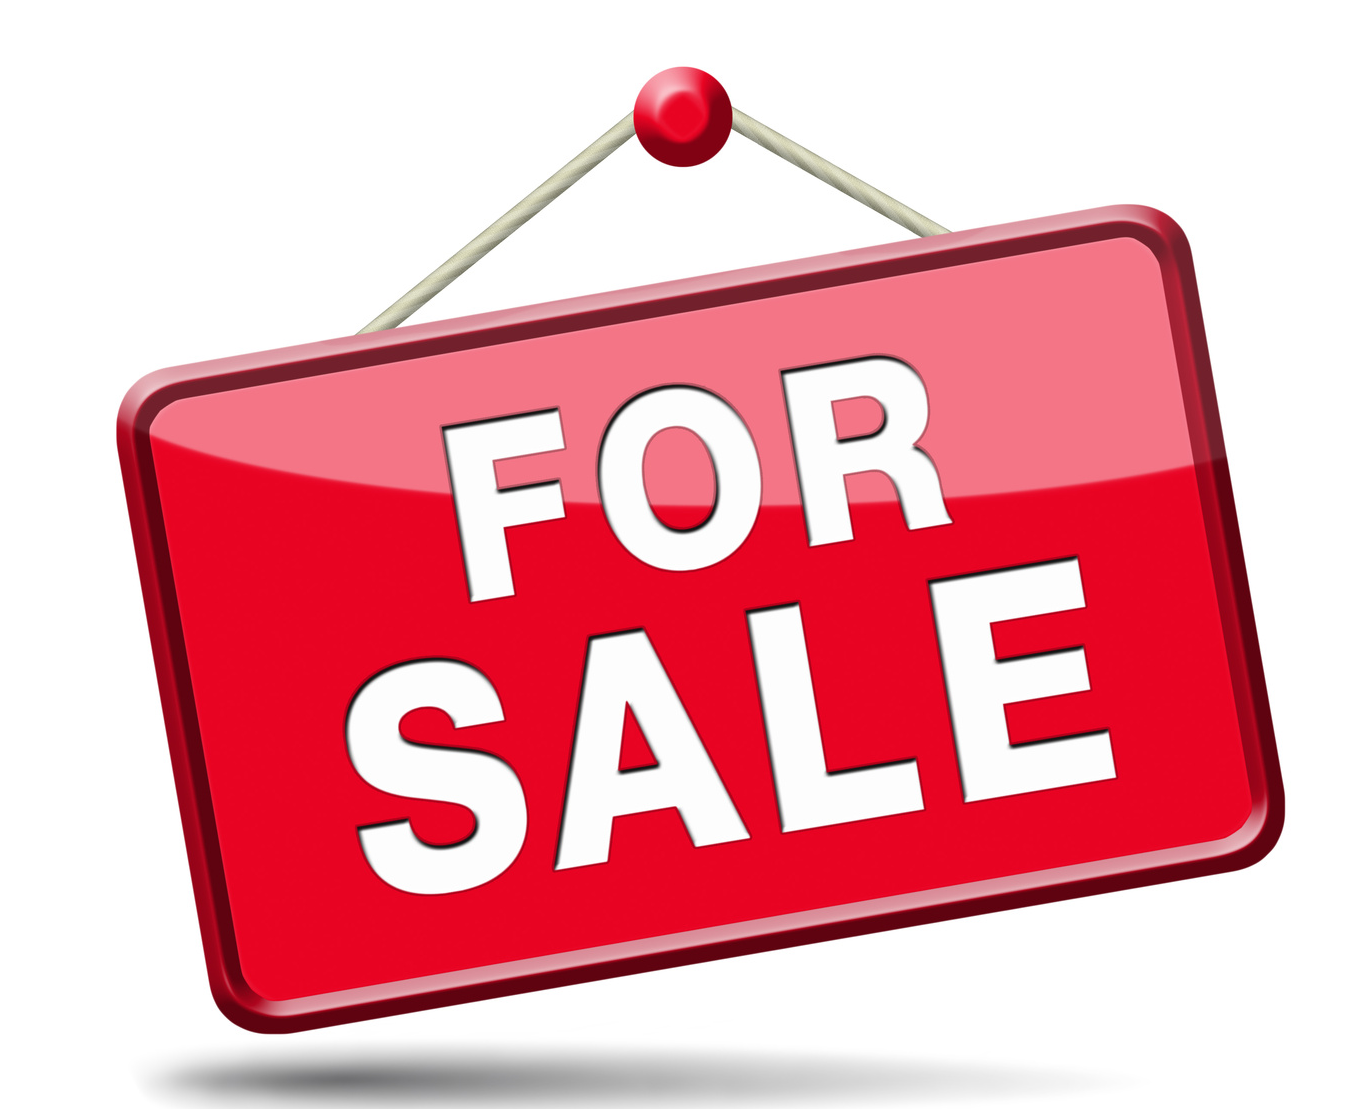 For Sale Png (86+ Images In Collection) #249306.